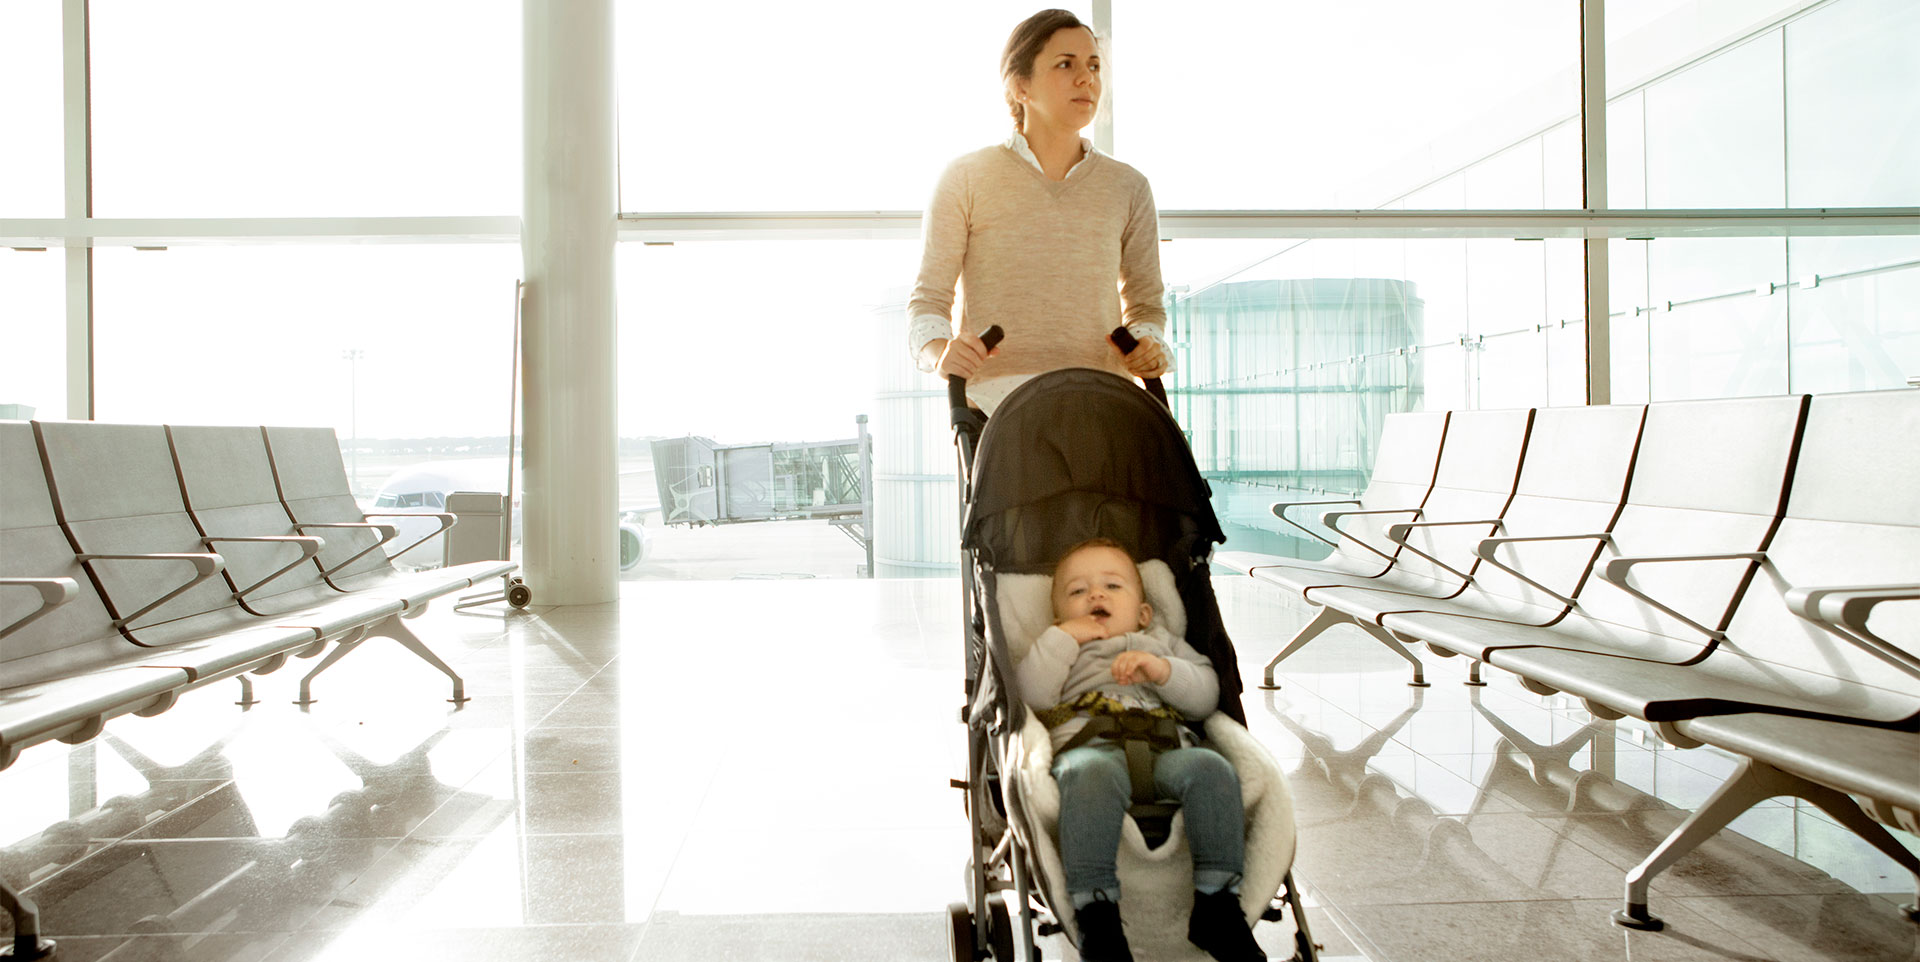 Baby Cot United Airlines Pushchairs On Planes Check These Airline Restrictions Which